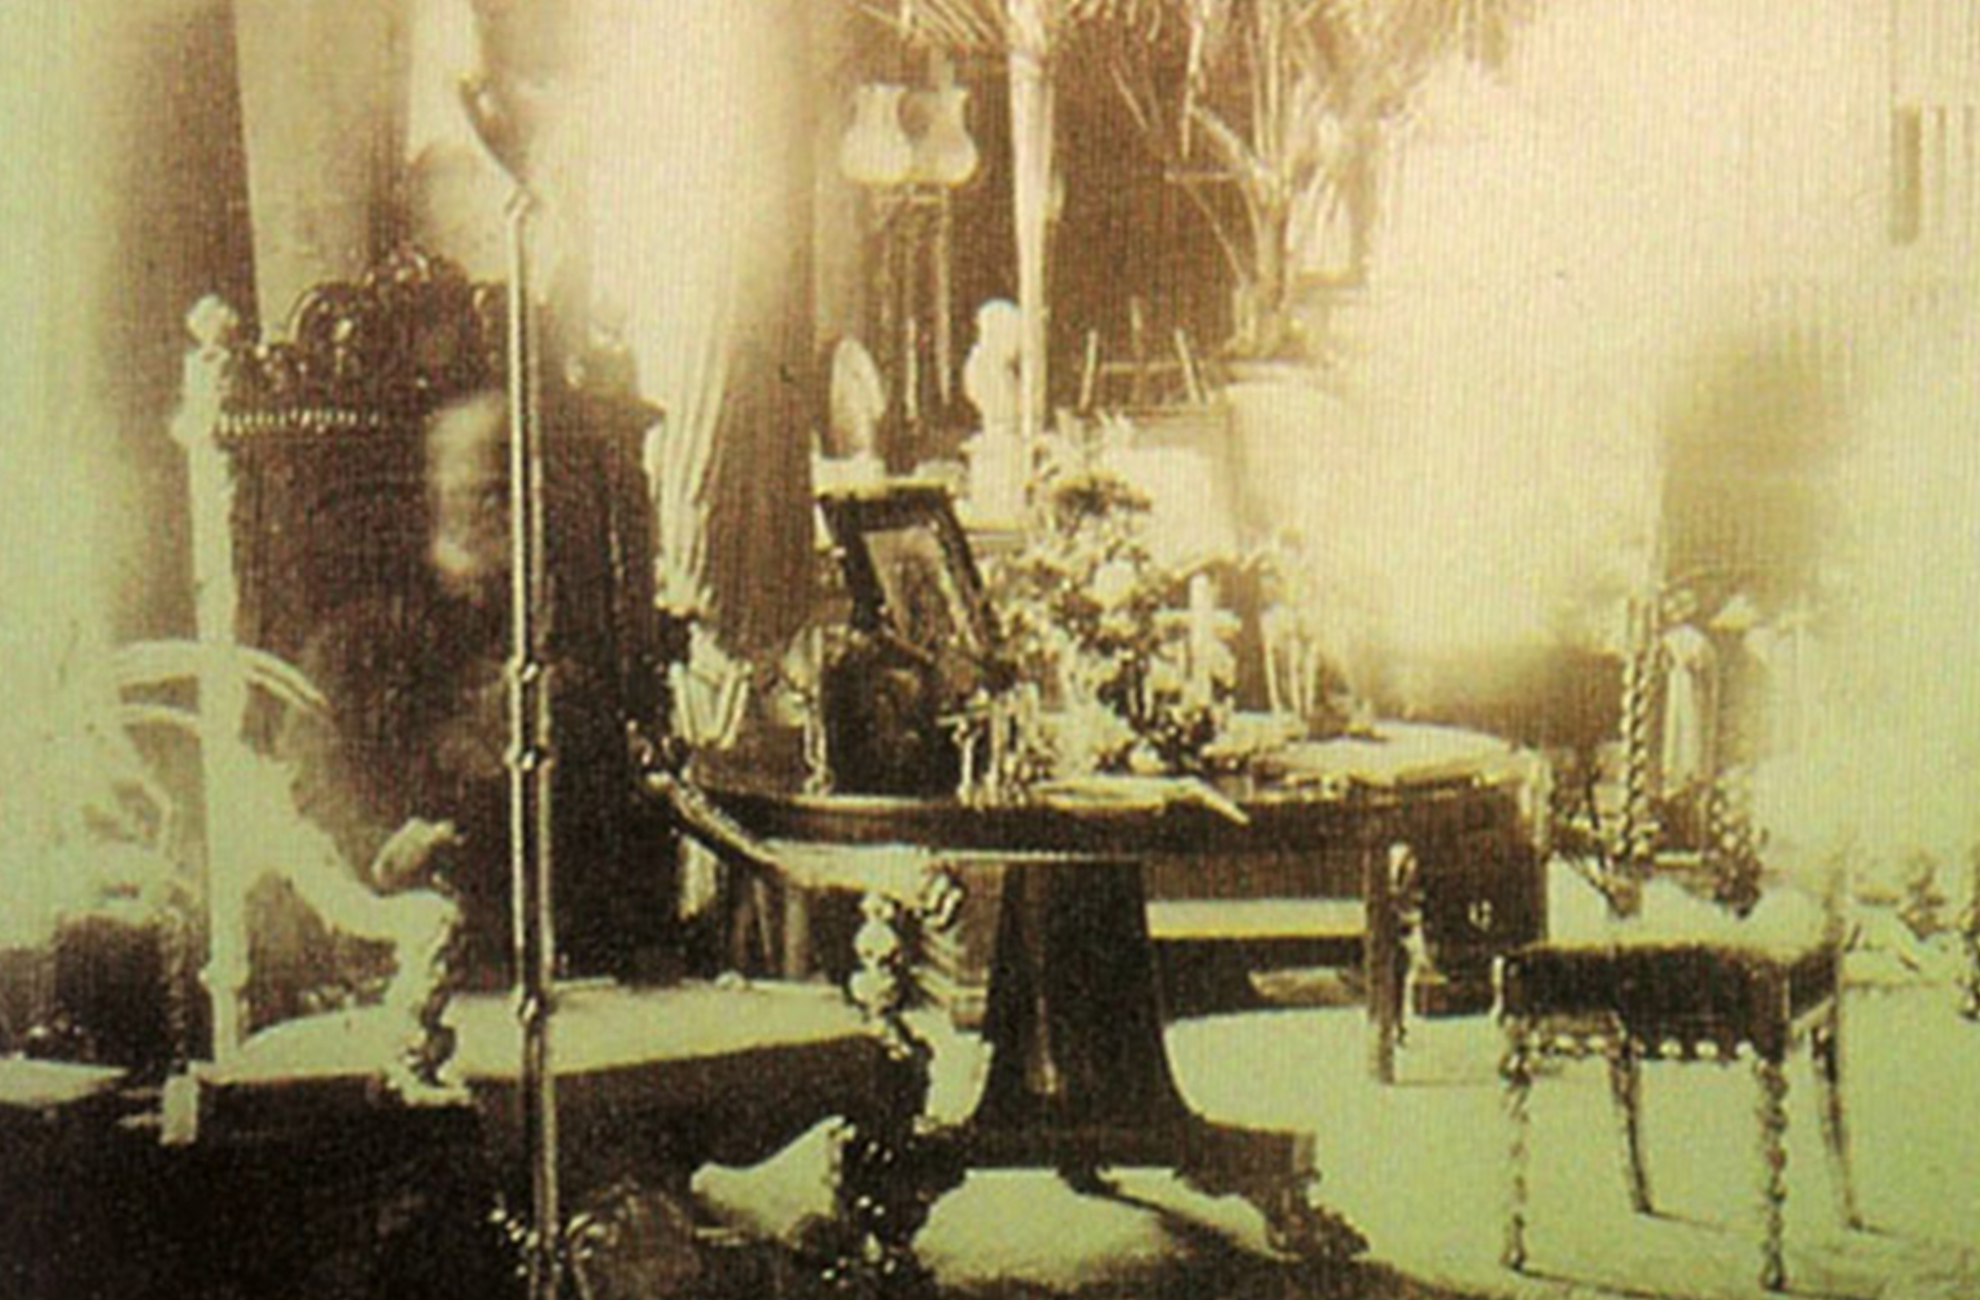 An old photograph of the ghost of Lord Combermere of Combermere Abbey as he sits in the library